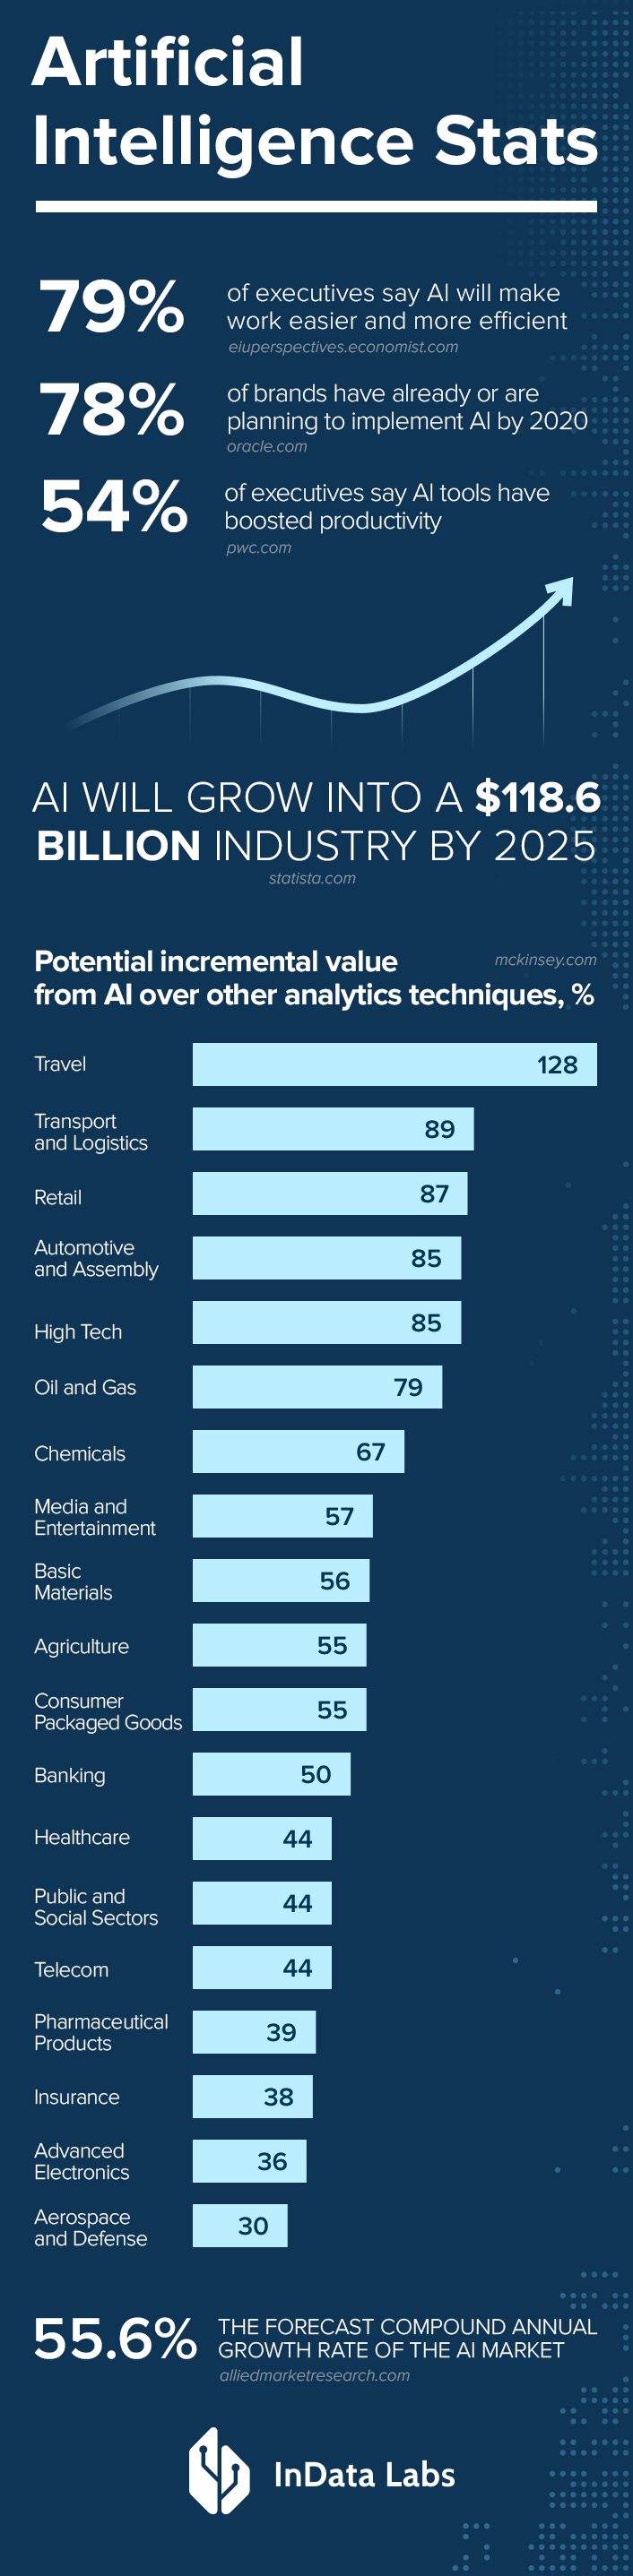 Artificial Intelligence Stats InDataLabs